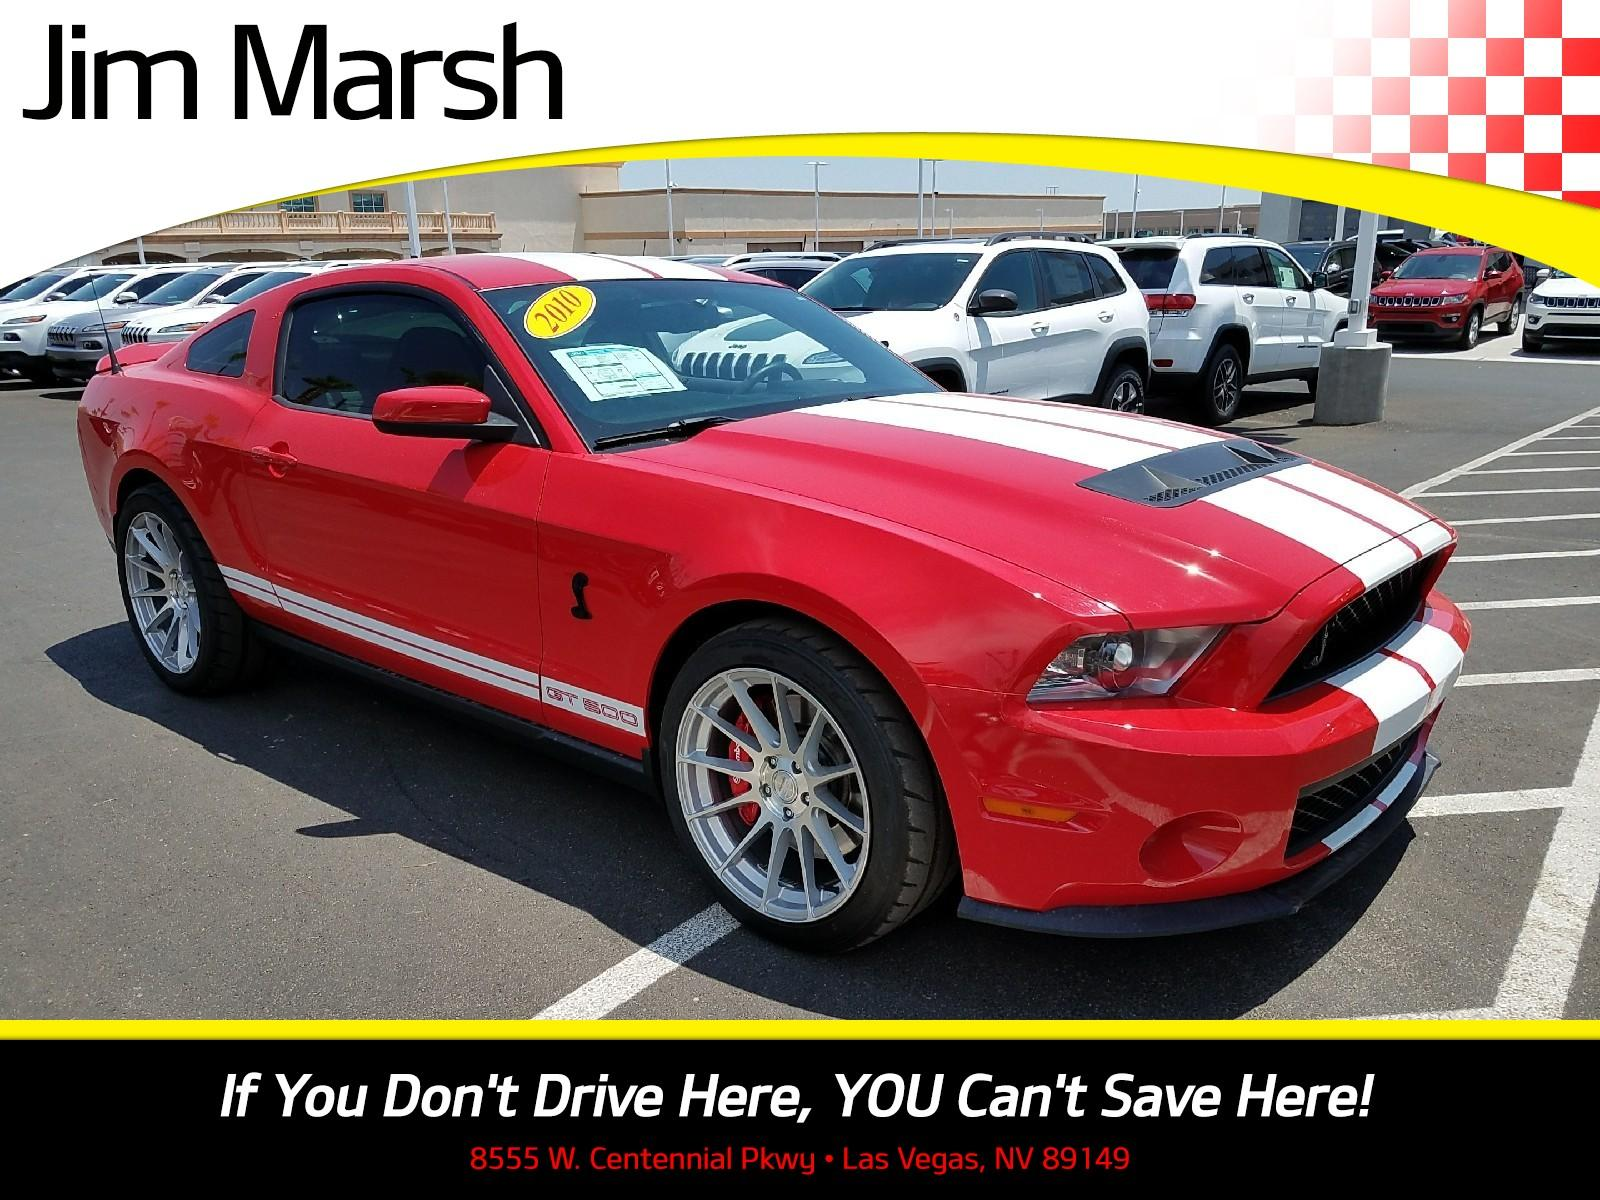 Ford Mustang Shelby GT 500 2010